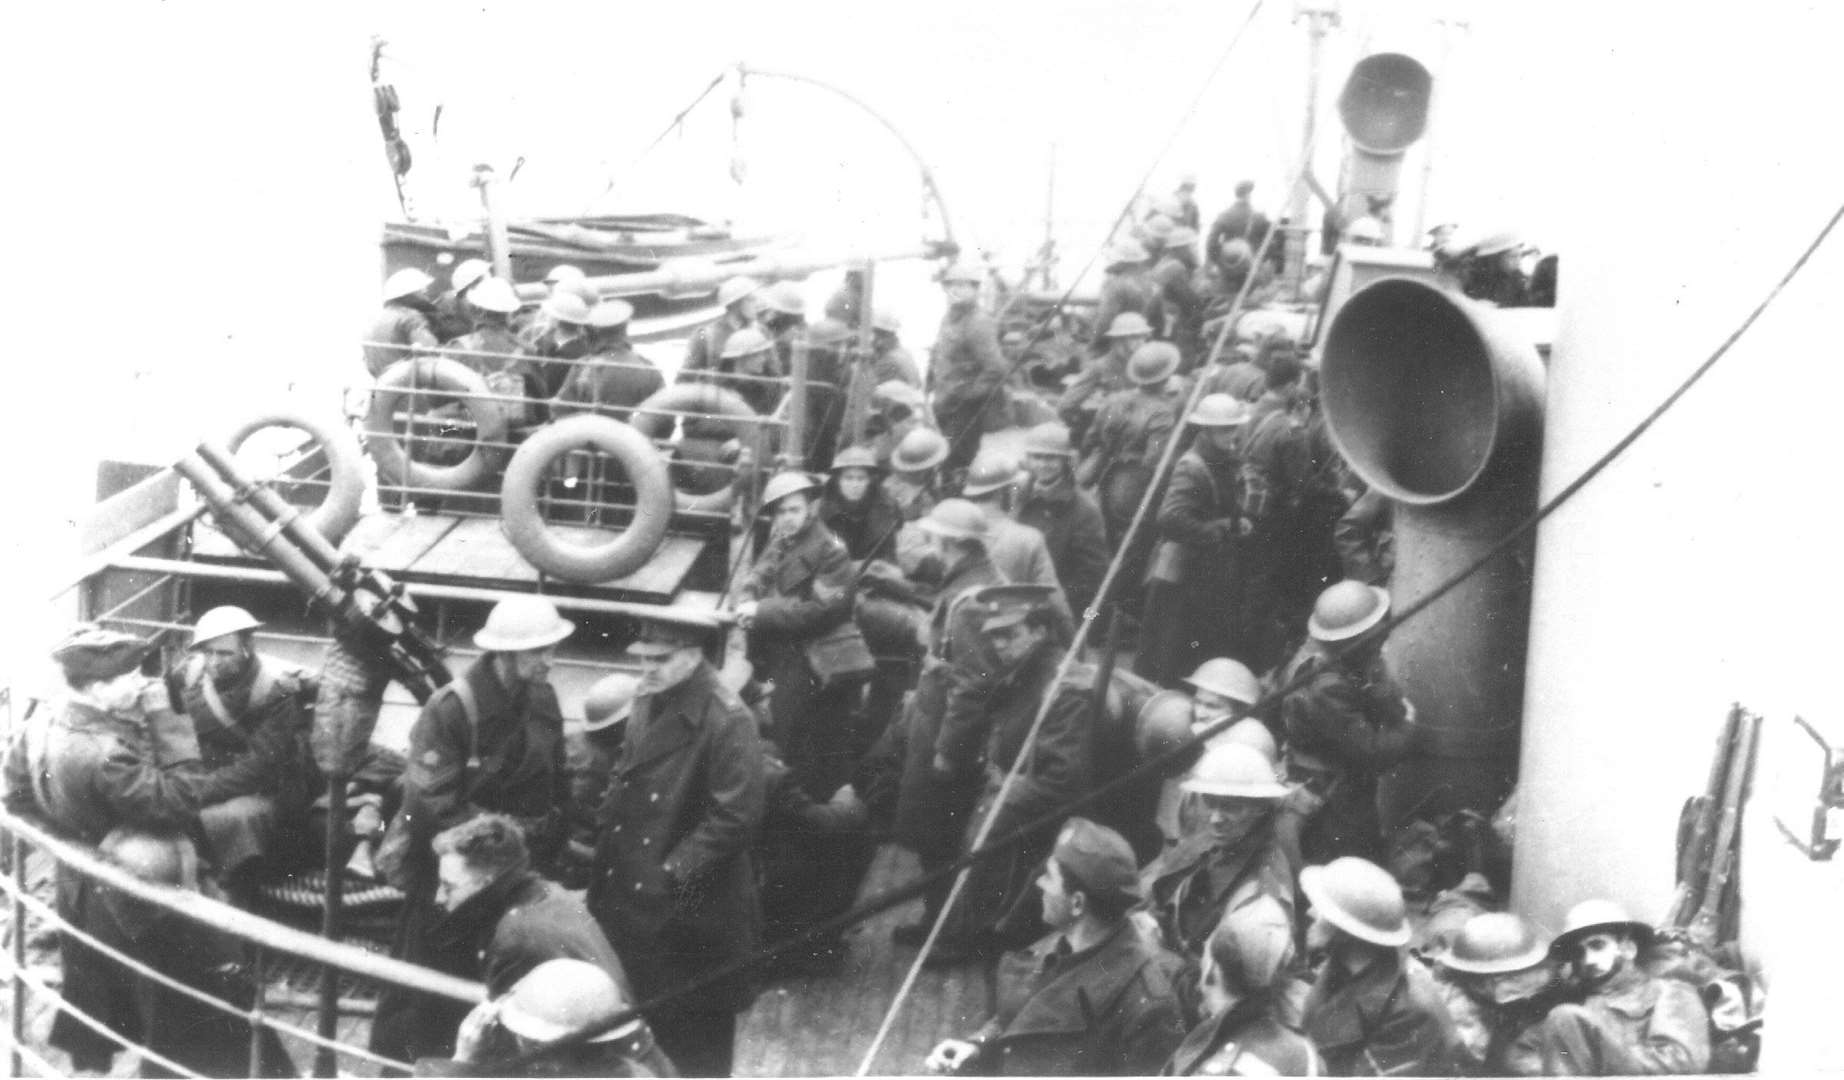 The Medway Queen loaded with soldiers evacuated from Dunkirk